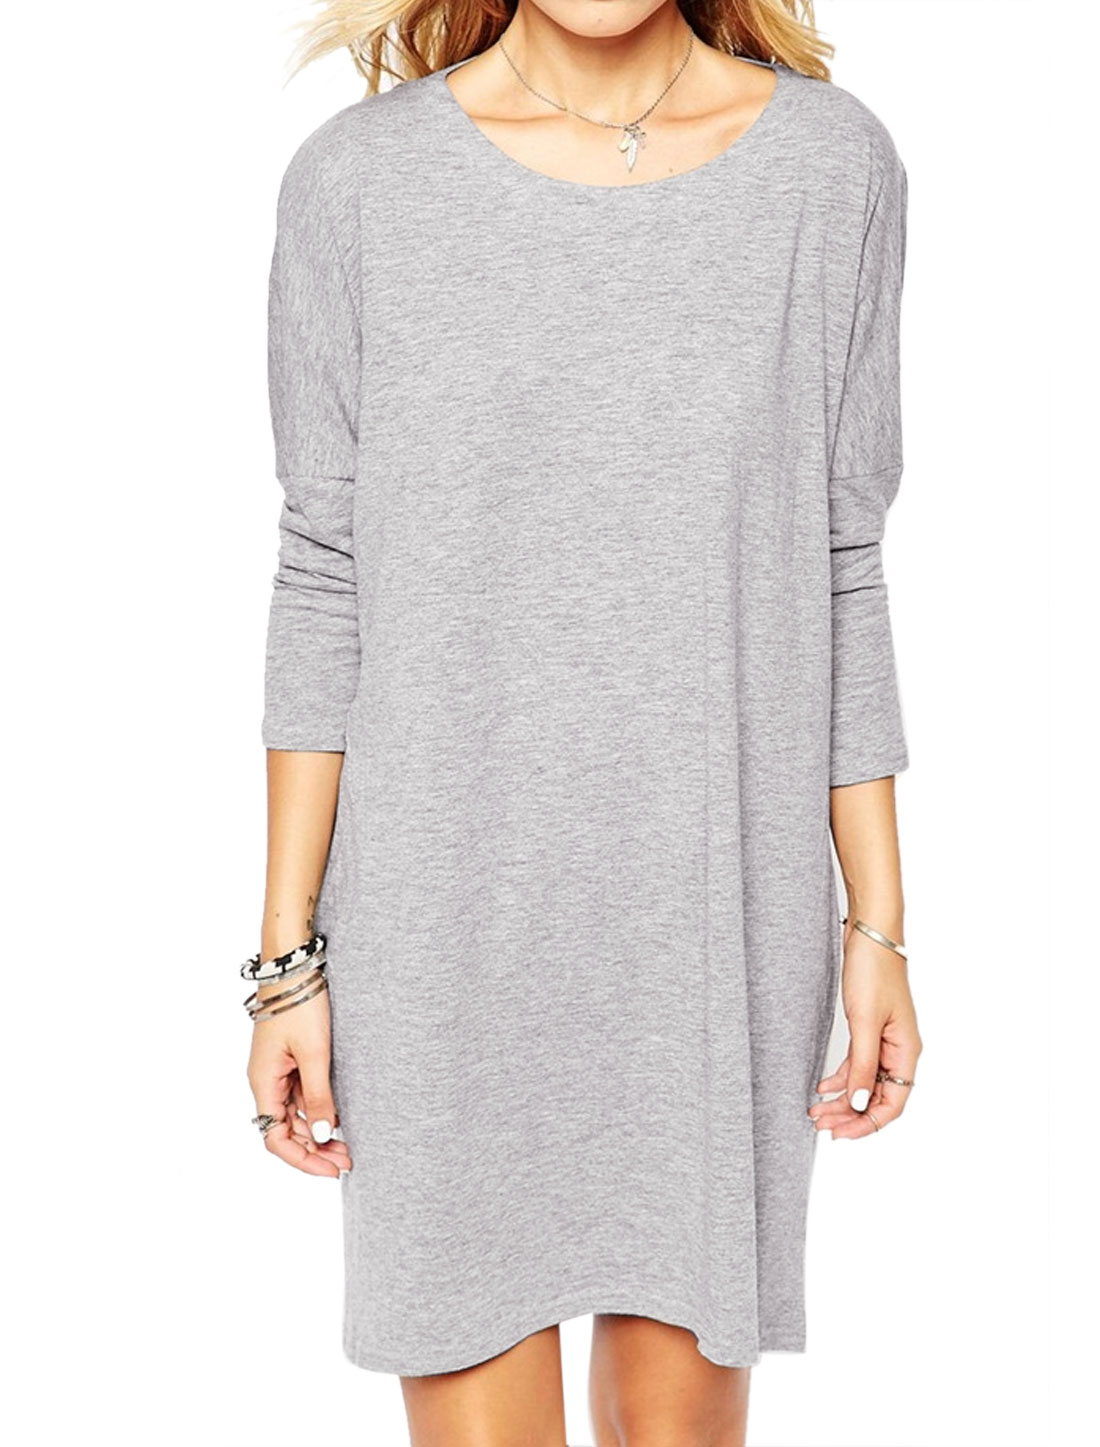 Women Round Neck Long Sleeves Cut Out Back Loose Fit Tunic Dress Gray S